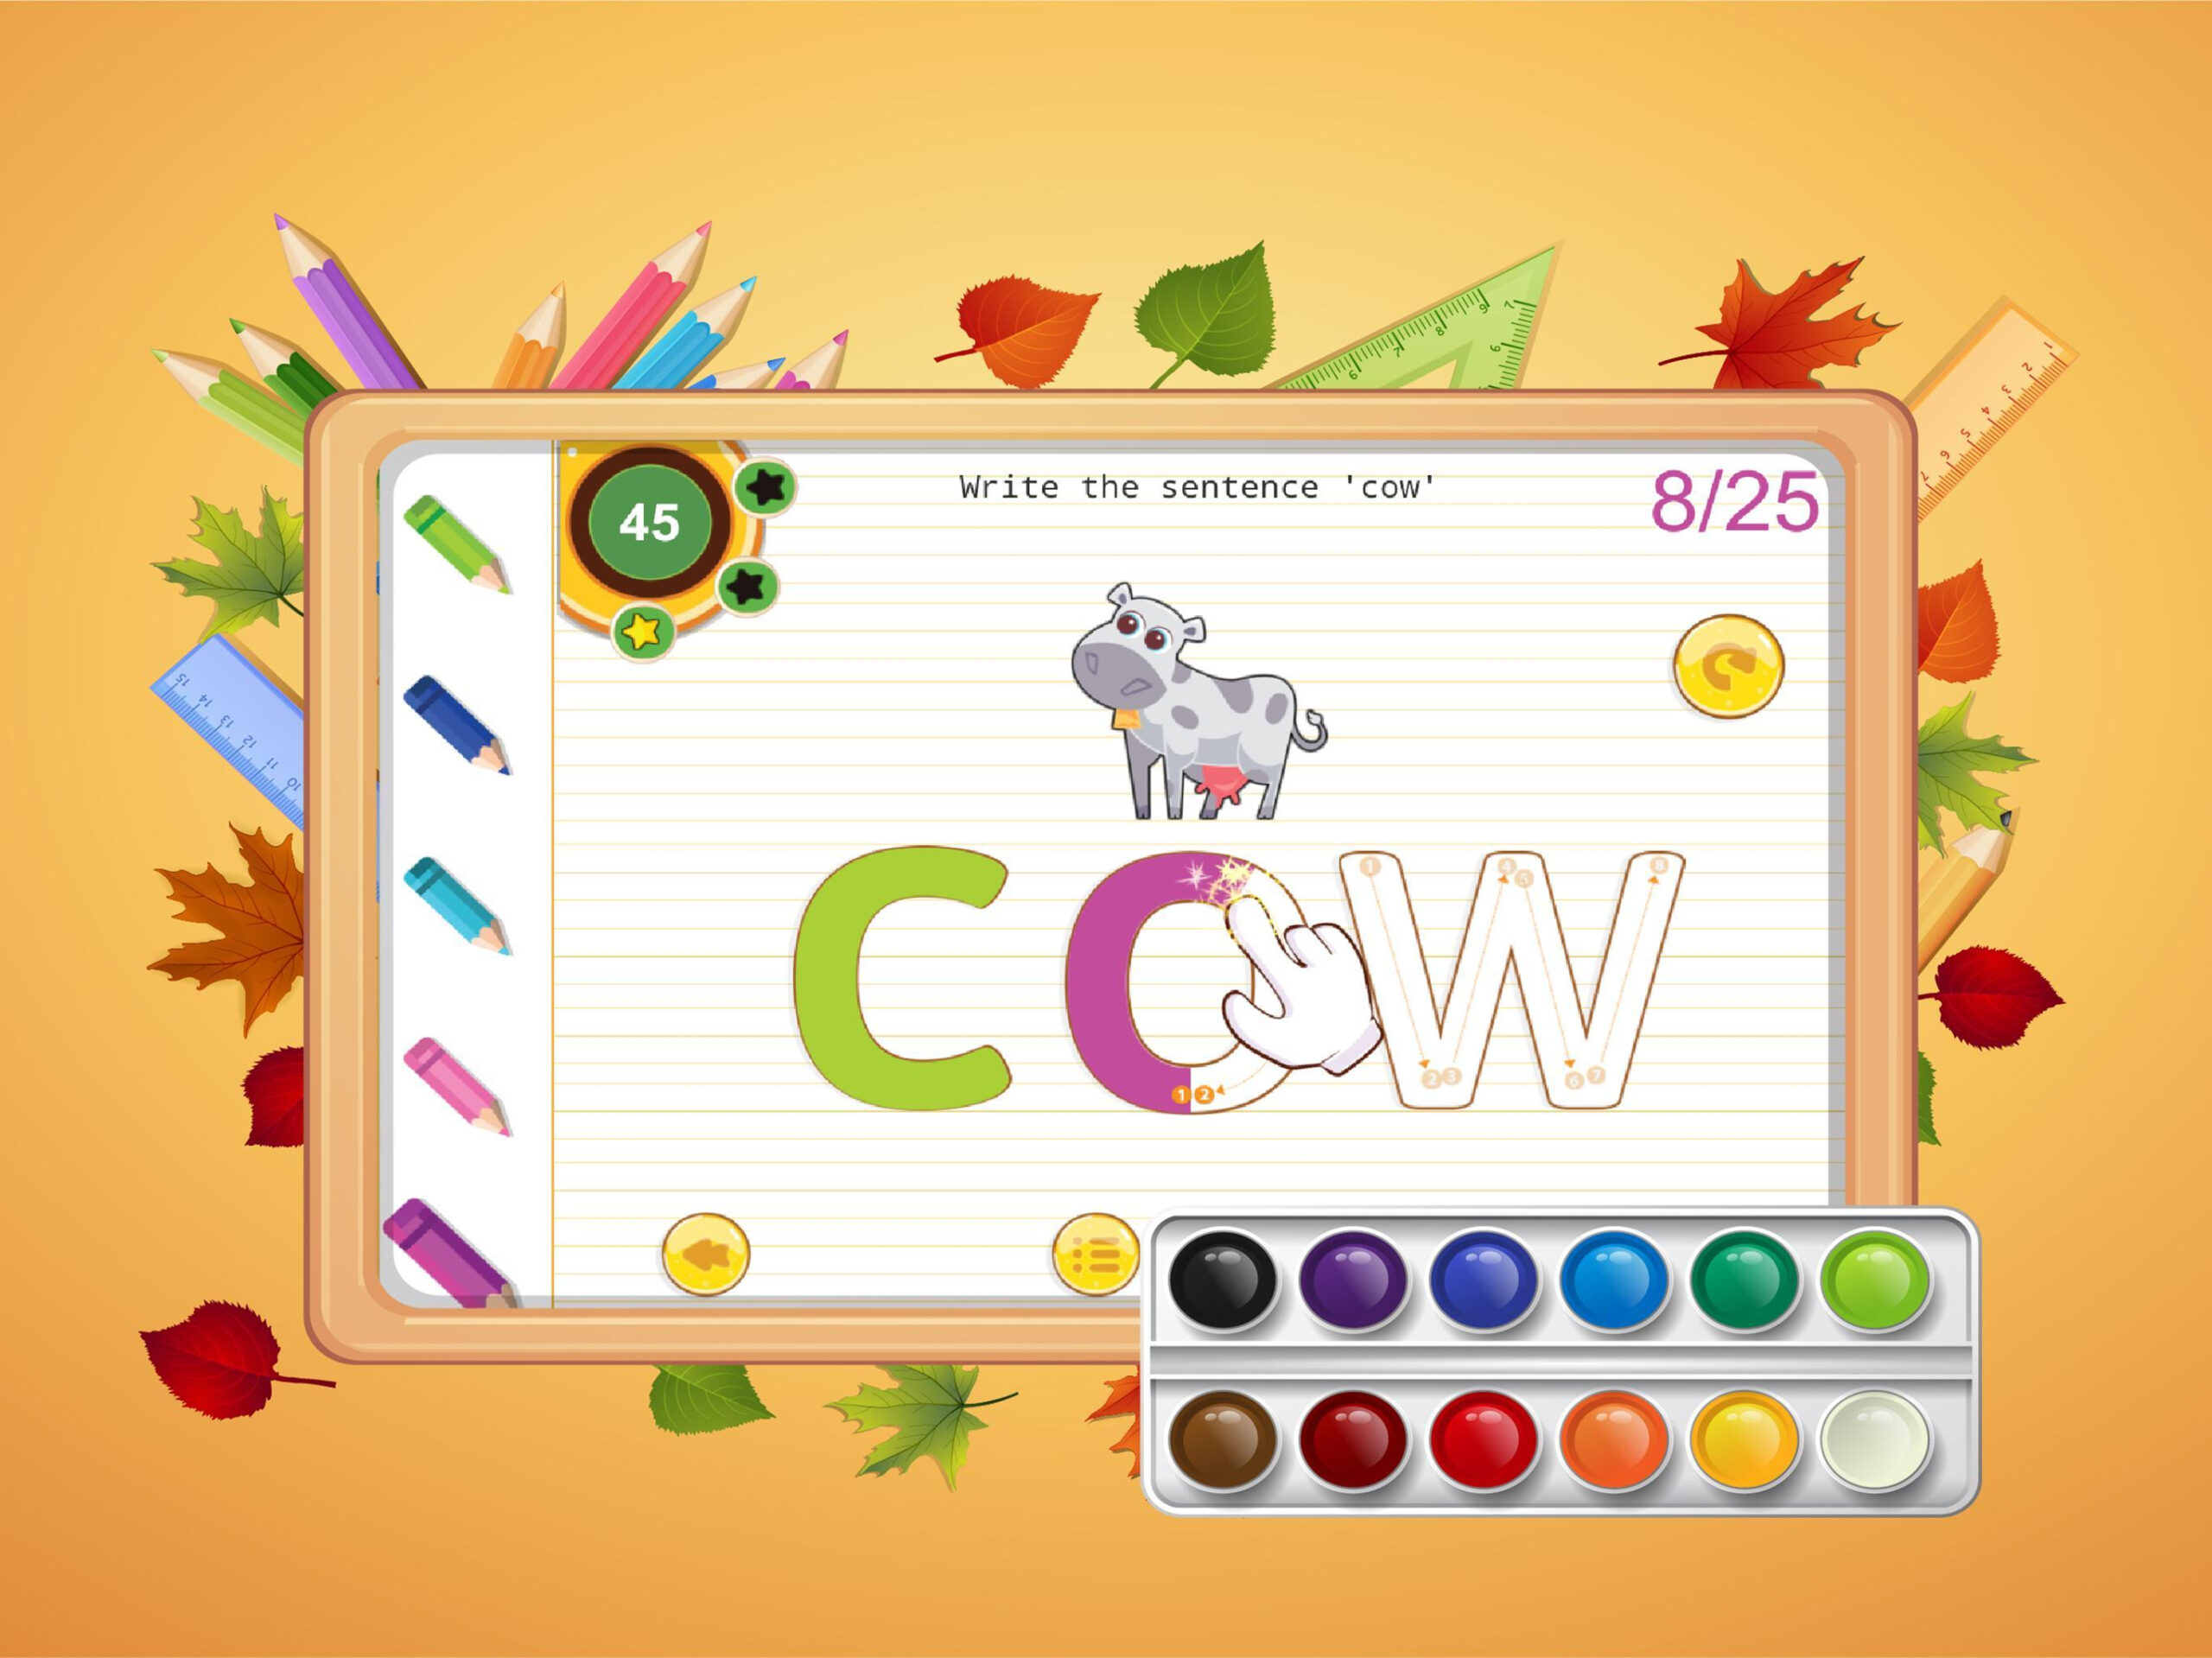 Abc Kids Writing Alphabet - Trace Handwriting App For with regard to Alphabet Tracing Free App